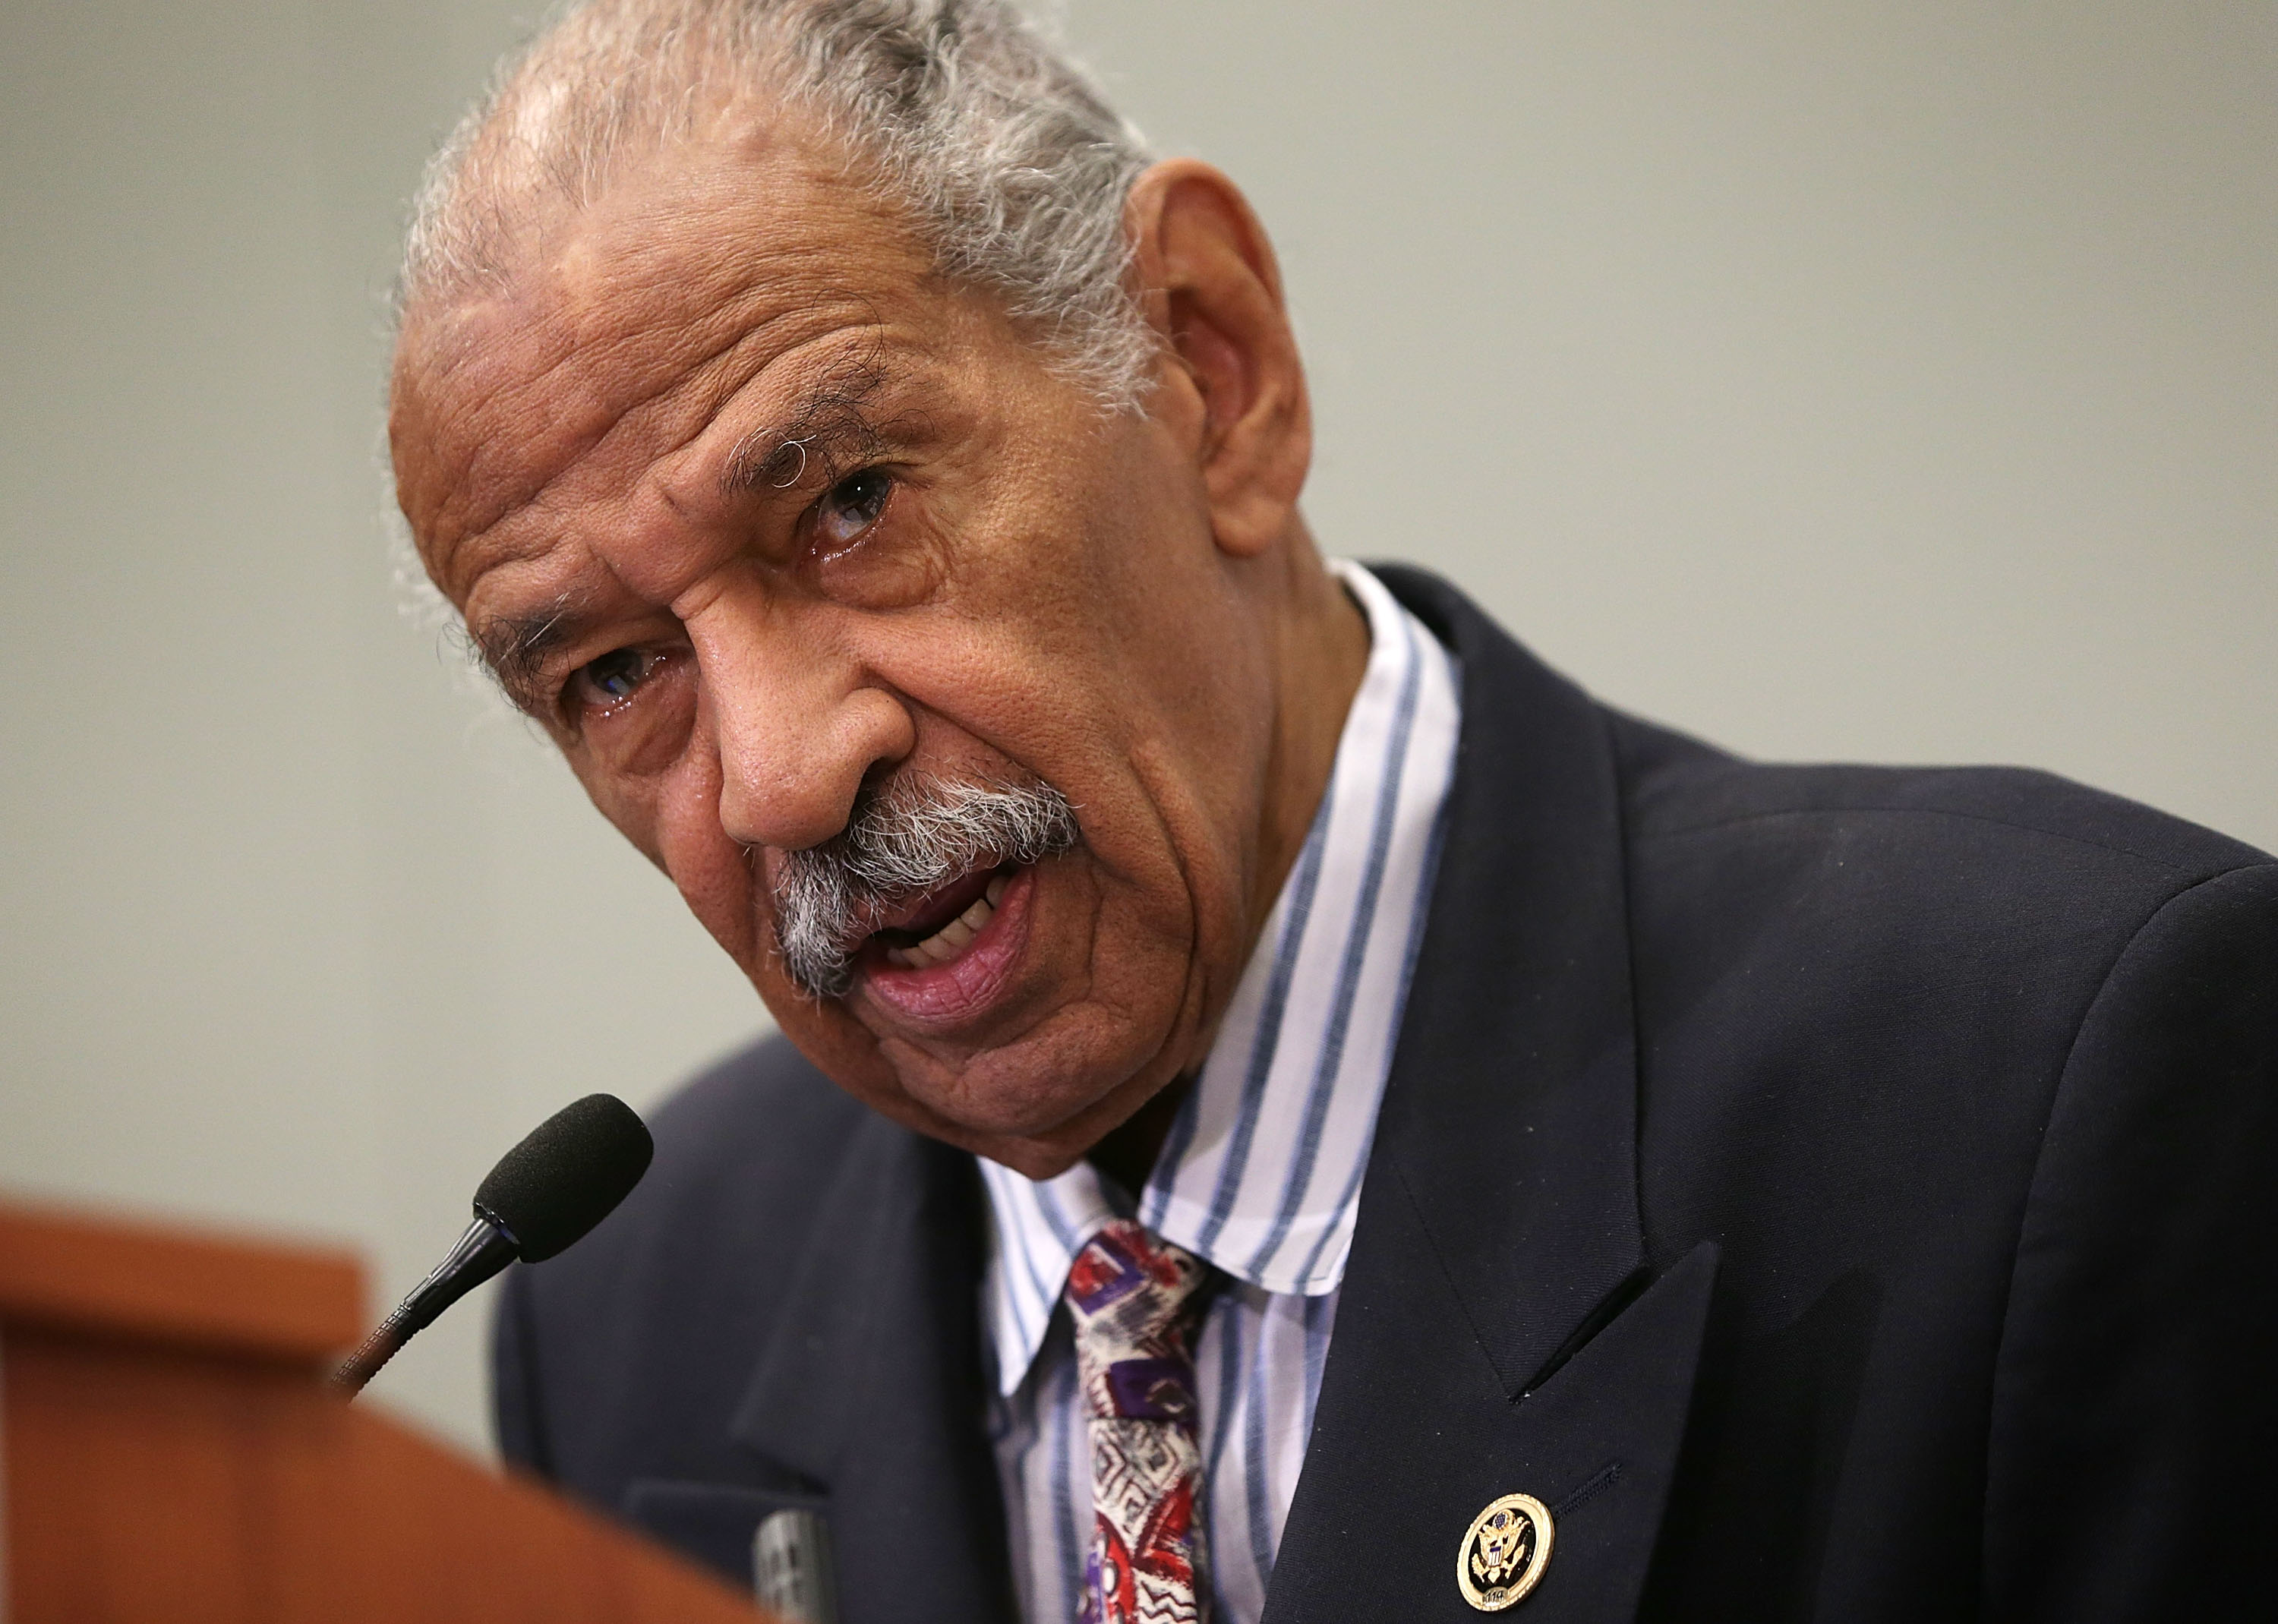 Rep. John Conyers (D-MI) speaks at a session during the Congressional Black Caucus Foundation's 45th annual legislative conference in in Washington, D.C., on Sept. 18, 2015.